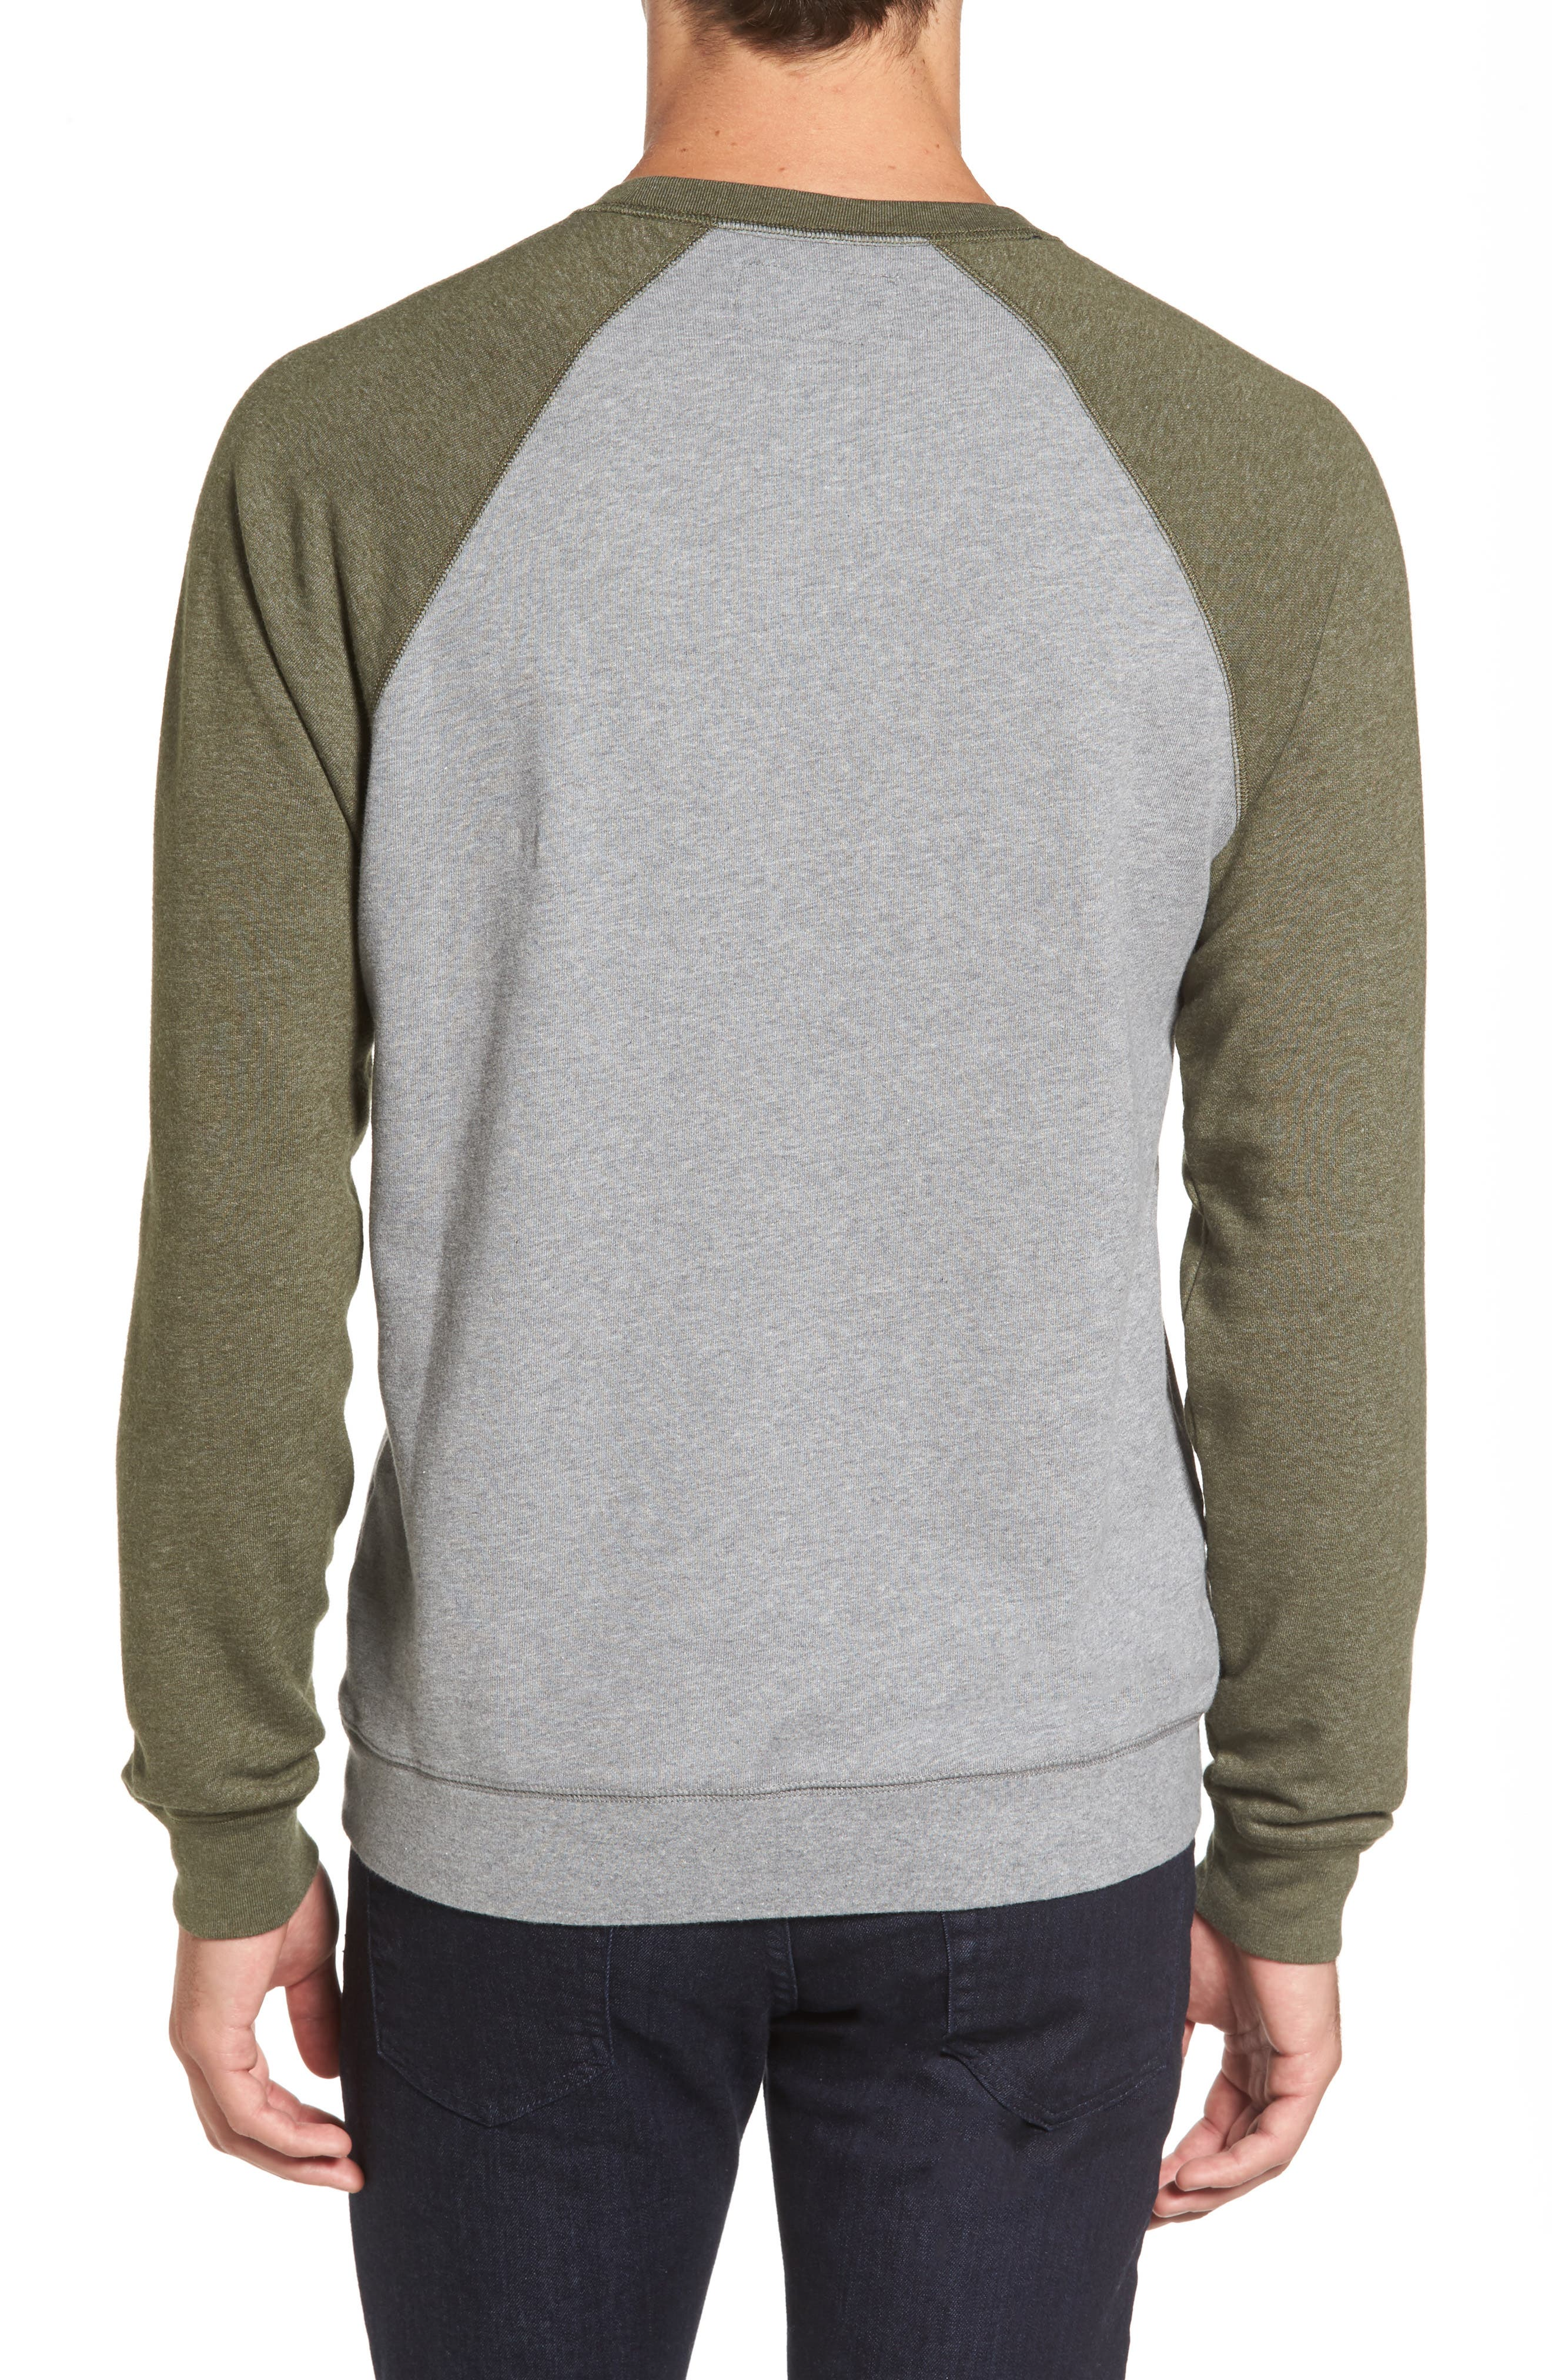 Colorblock French Terry Sweatshirt,                             Alternate thumbnail 2, color,                             032